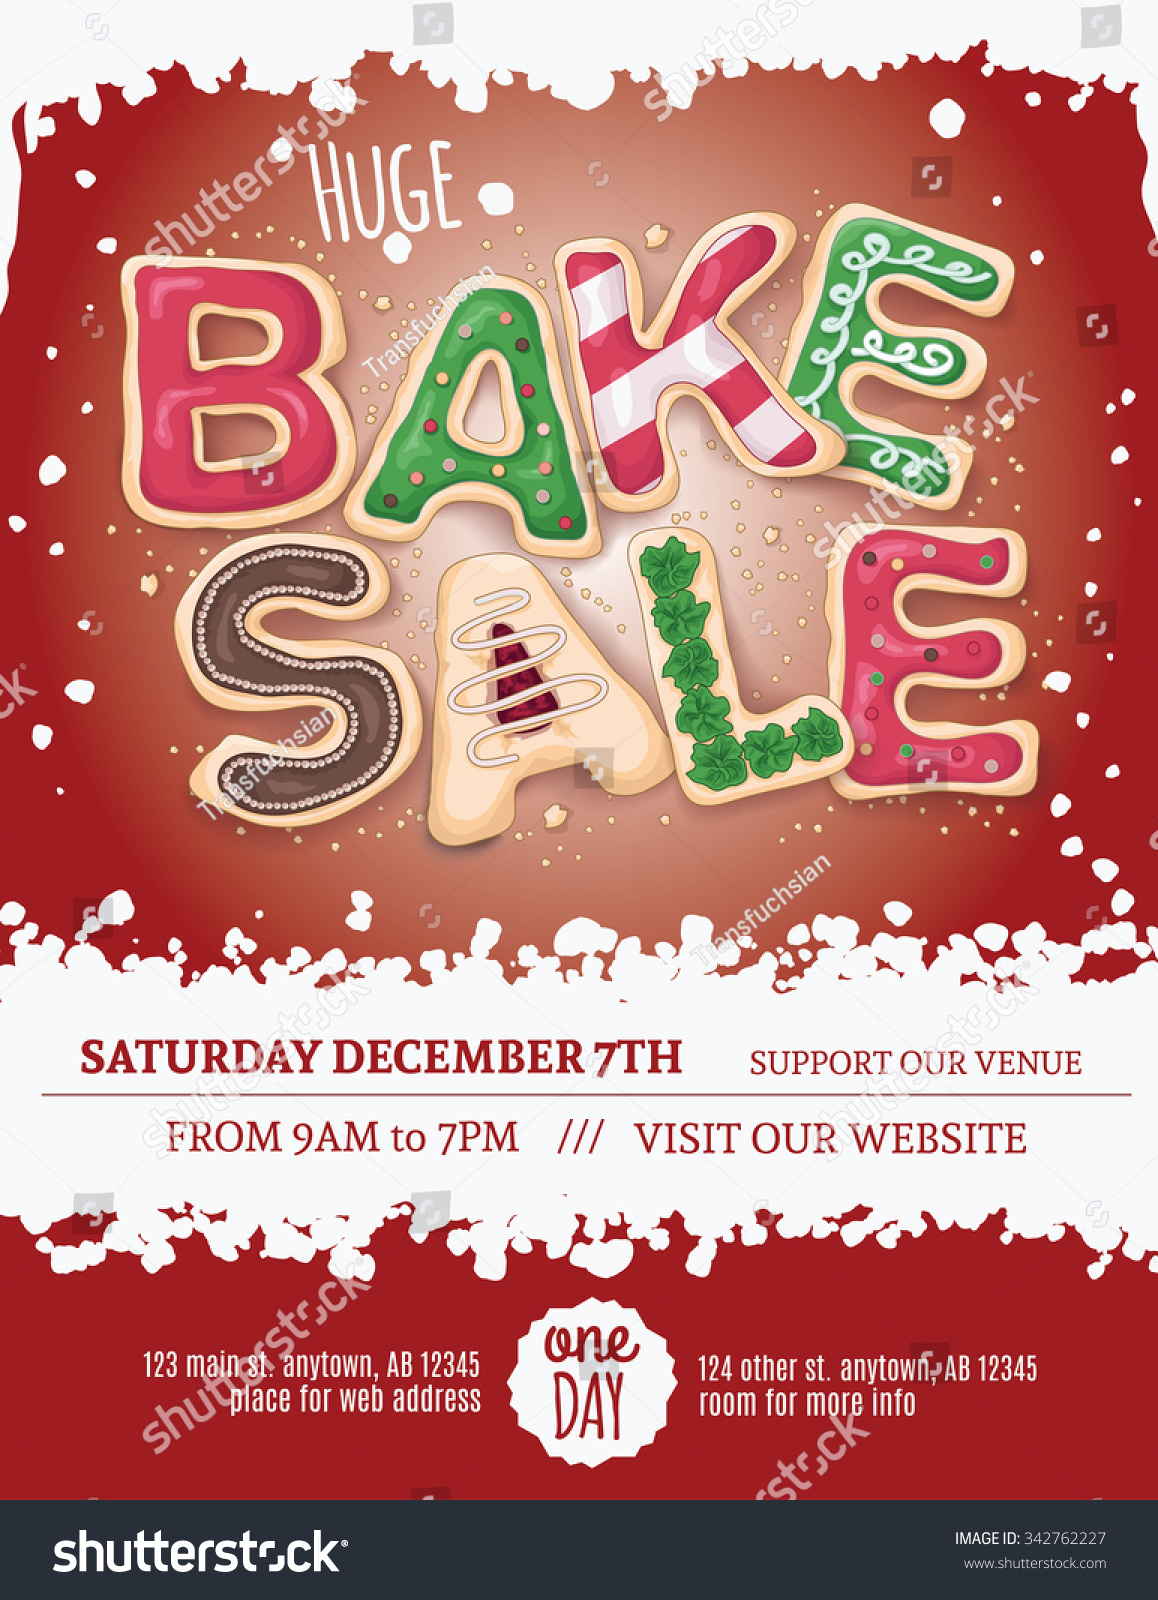 christmas bake flyer template hand stock vector 342762227 christmas bake flyer template hand drawn cookie letters on a red background